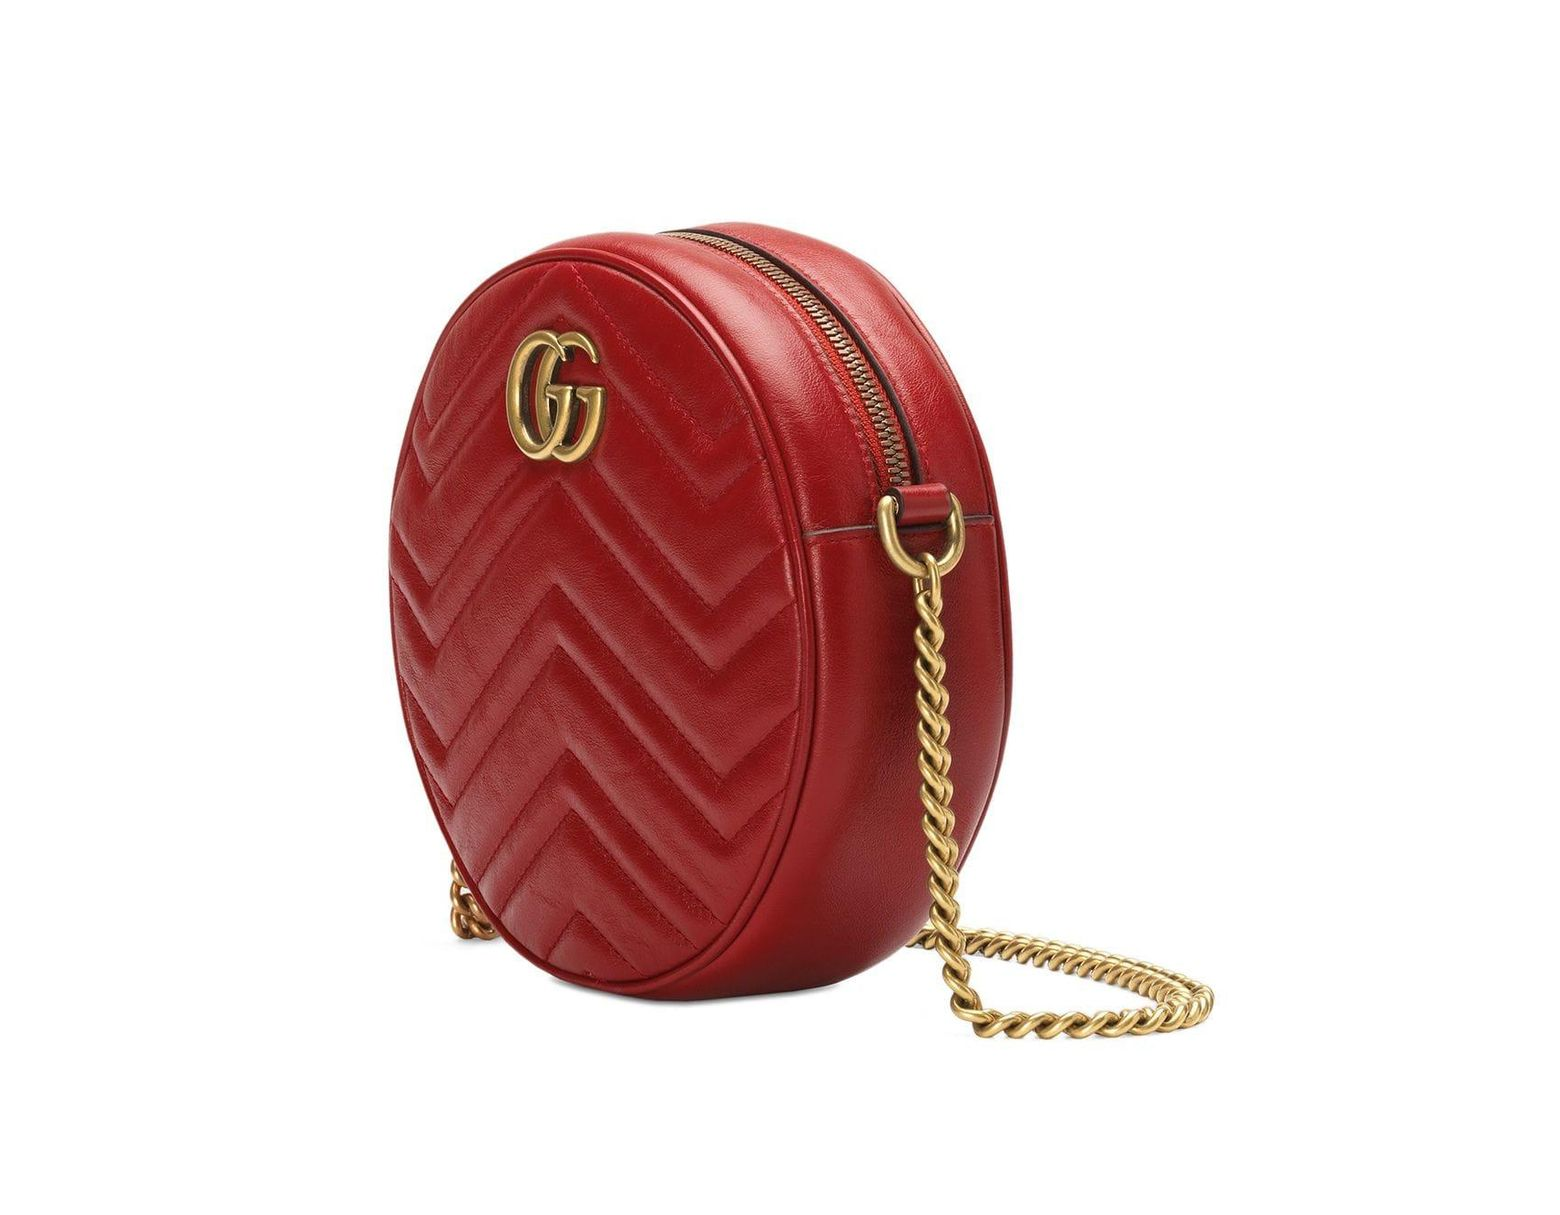 d0d65b4a51cc5c Gucci Women's GG Marmont Mini Round Shoulder Bag - Black in Red - Save 20%  - Lyst